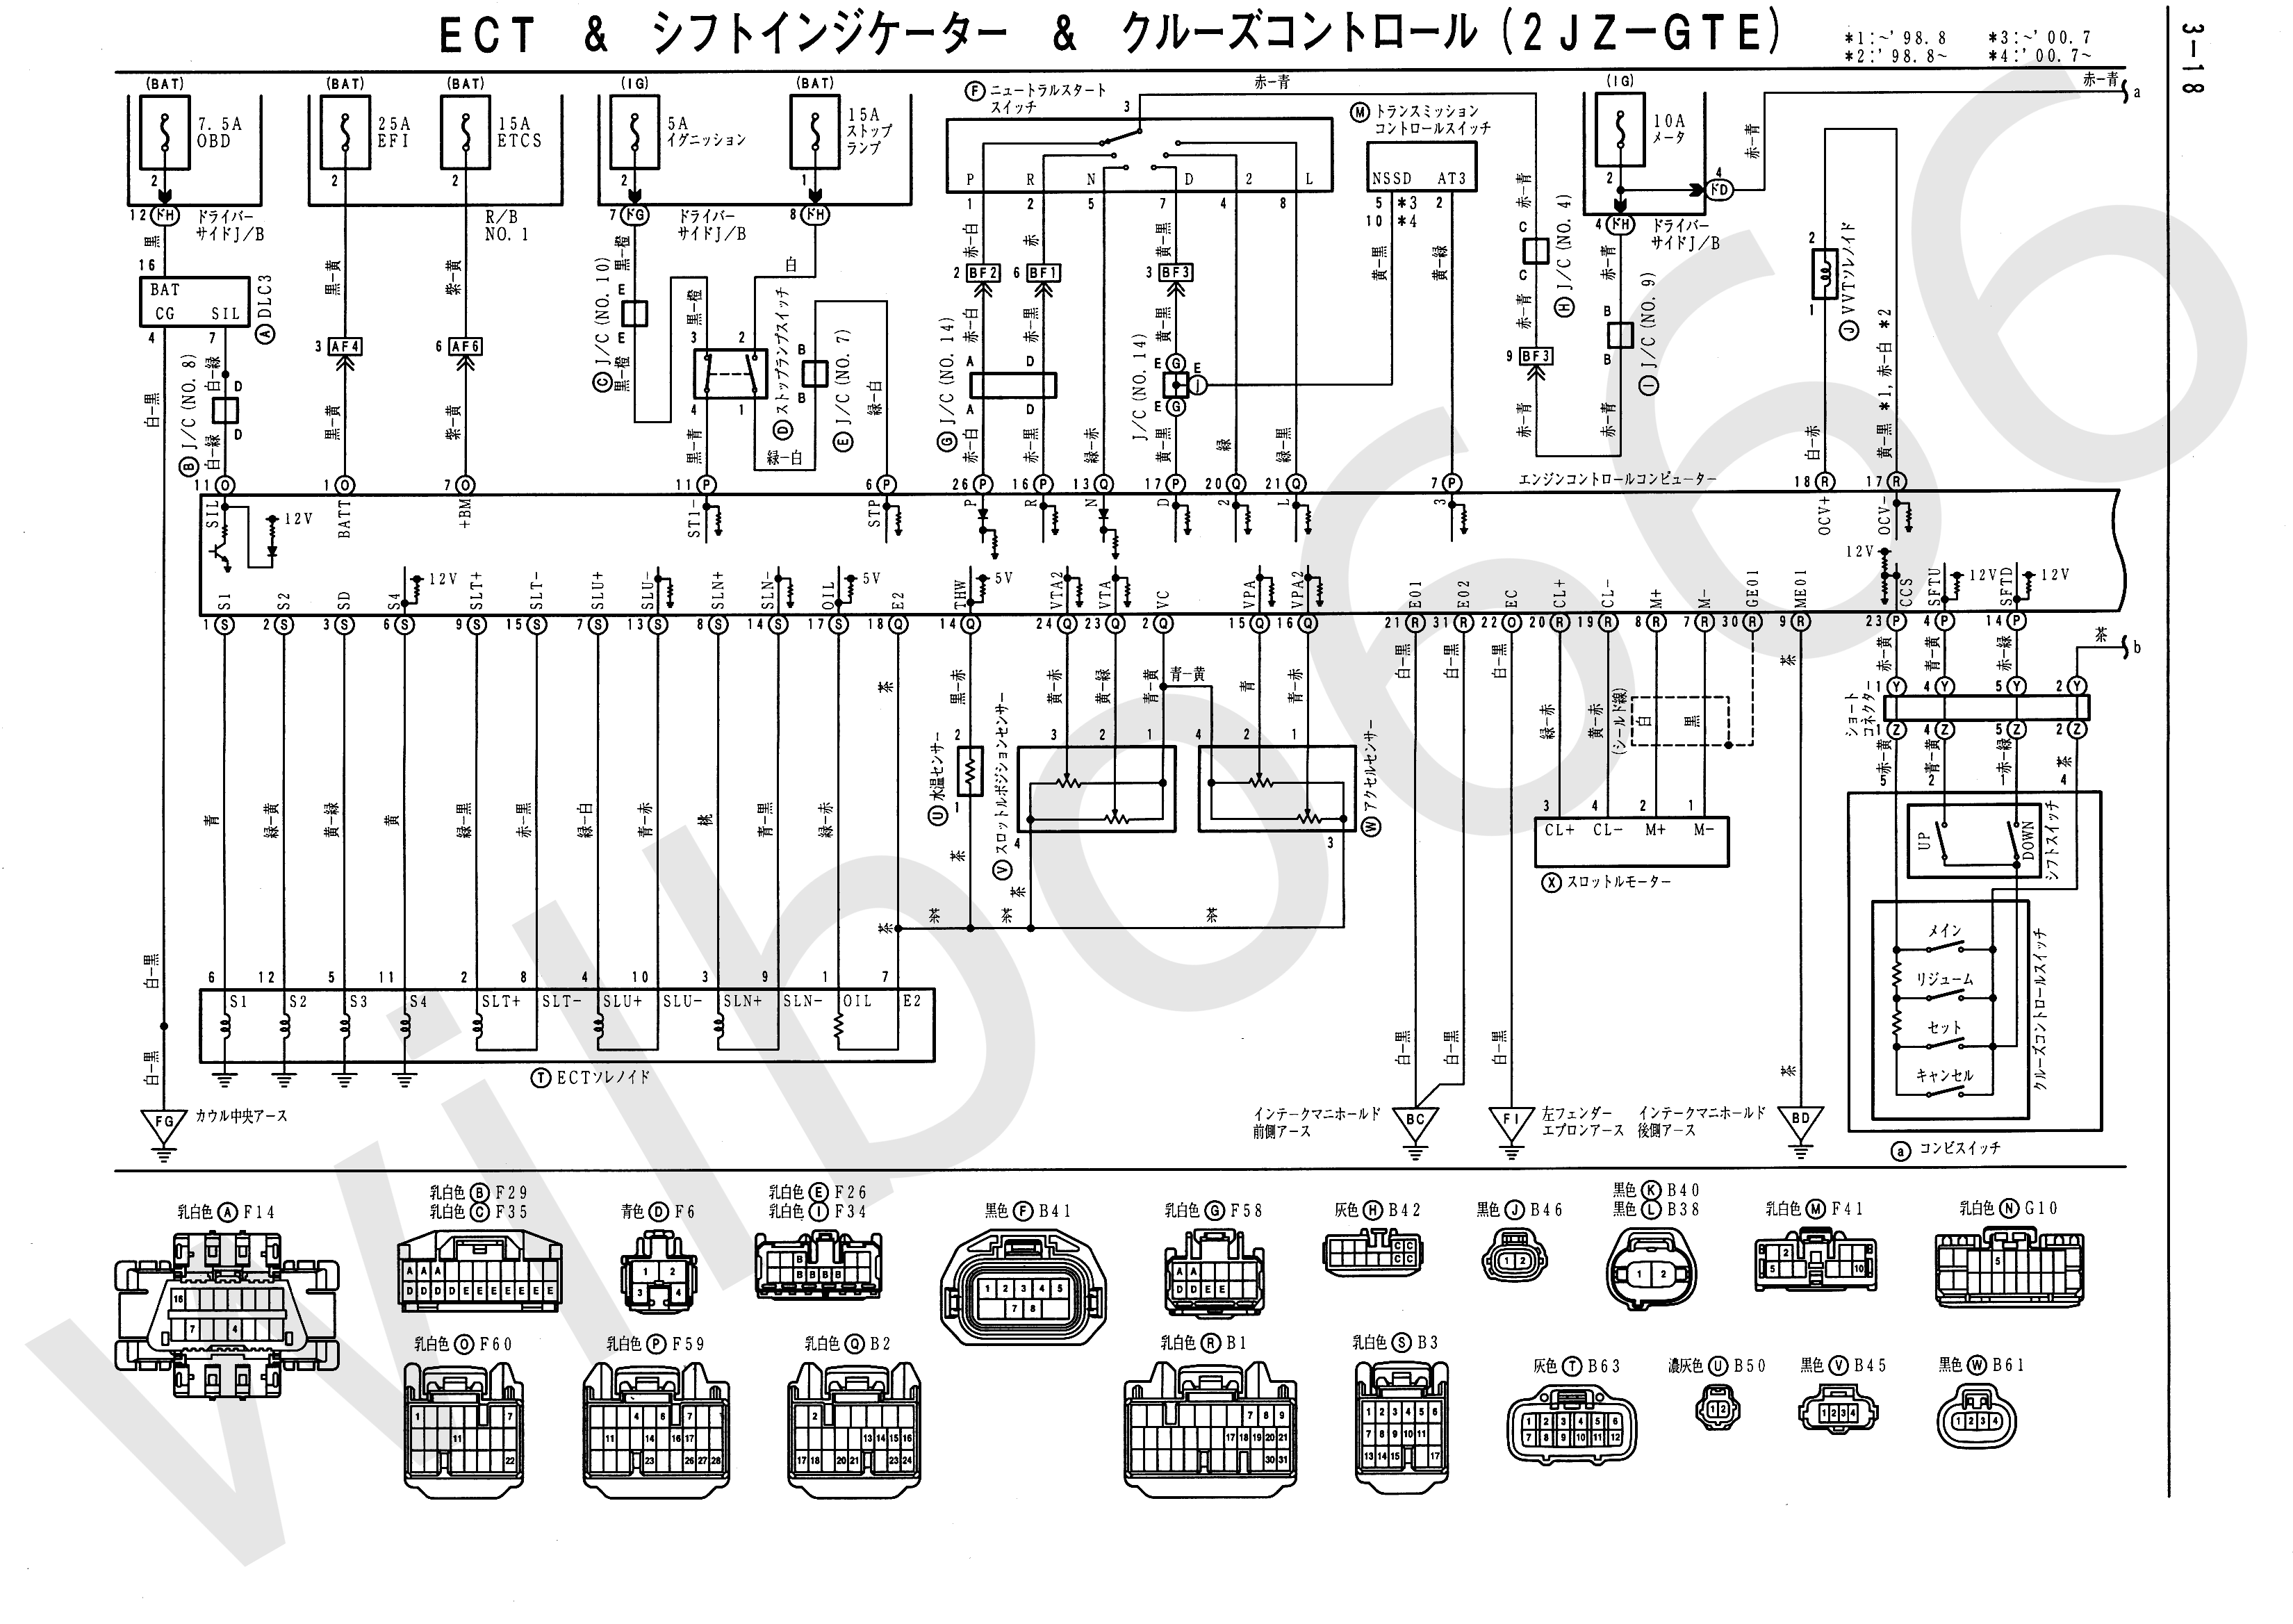 JZS161 Electrical Wiring Diagram 6748505 3 18 wilbo666 2jz gte vvti jzs161 aristo engine wiring 2jzgte wiring diagram at mifinder.co